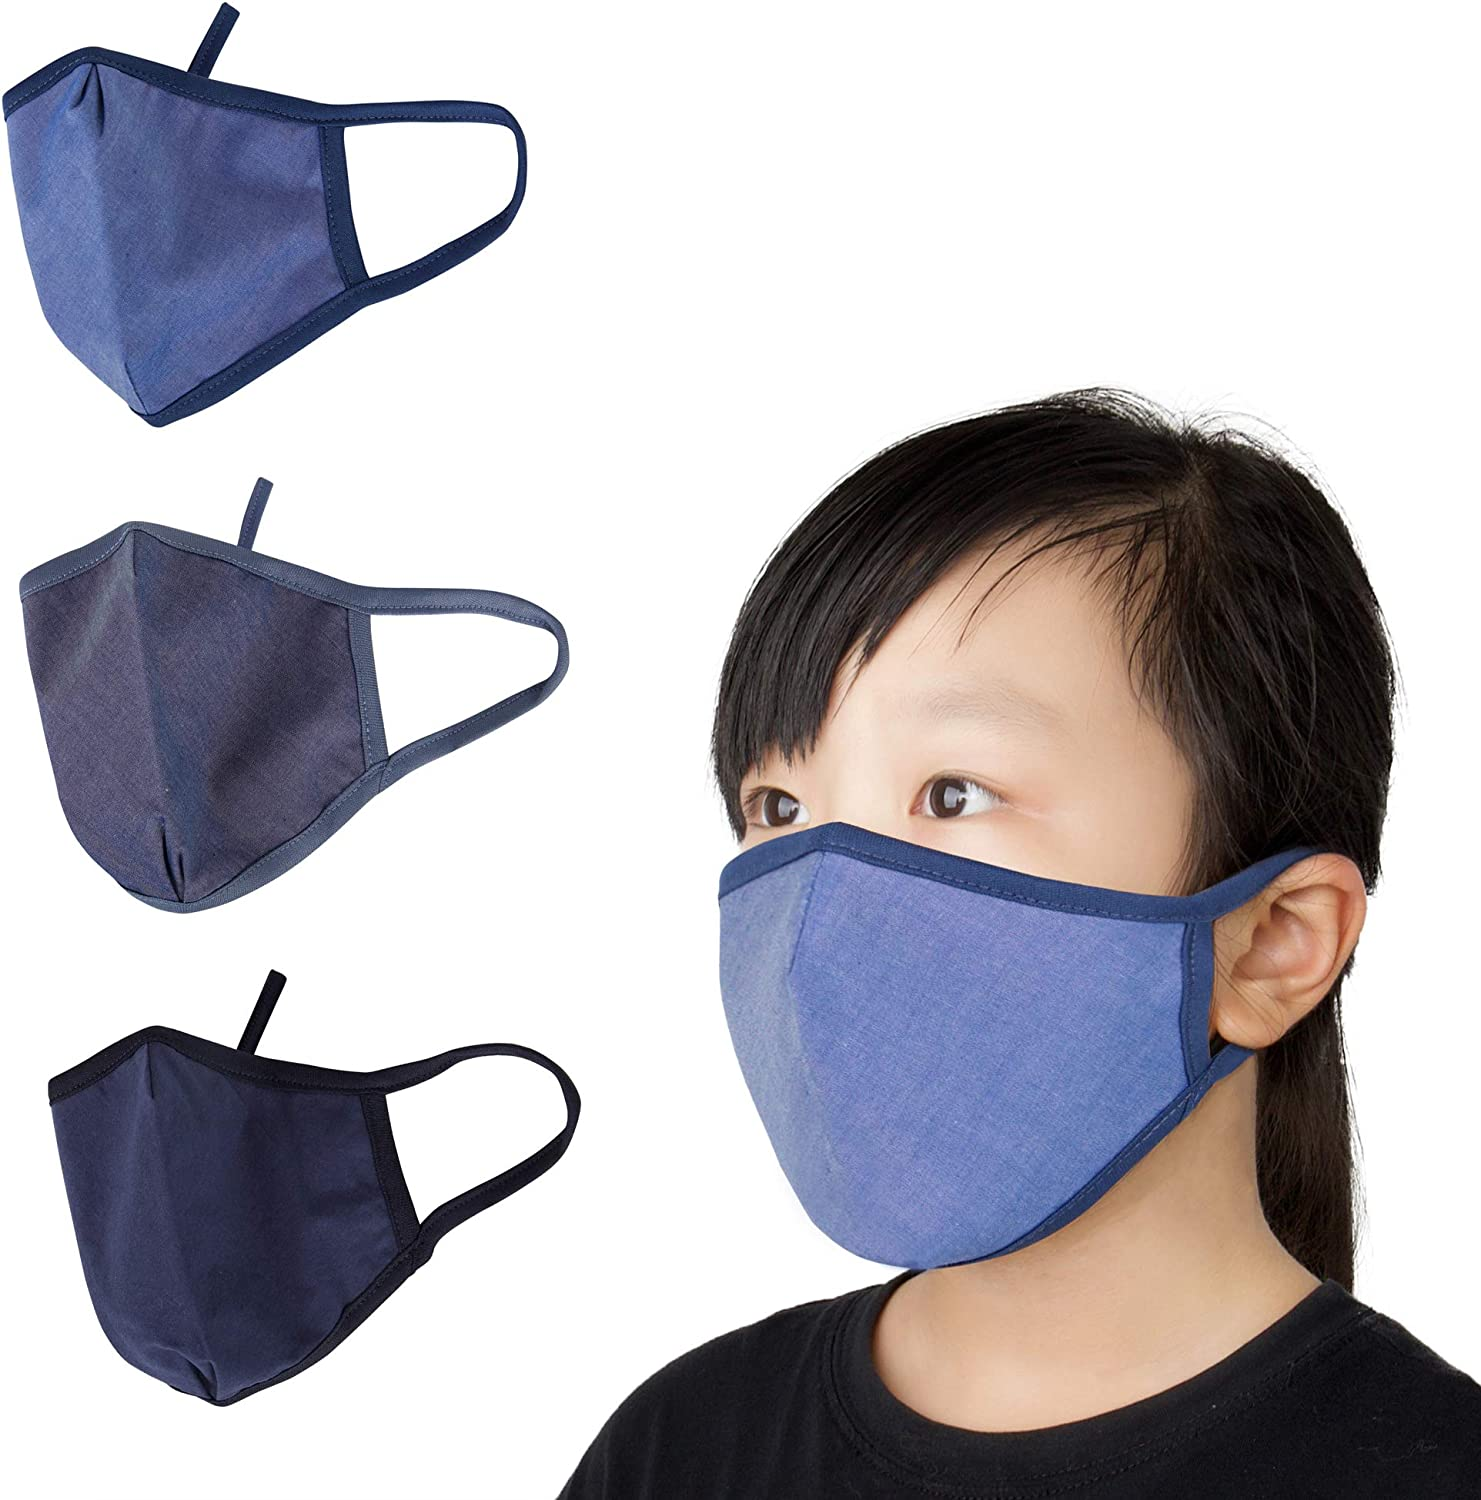 OS-SO Protective Reusable Face Covering Soft With Elasticated Straps